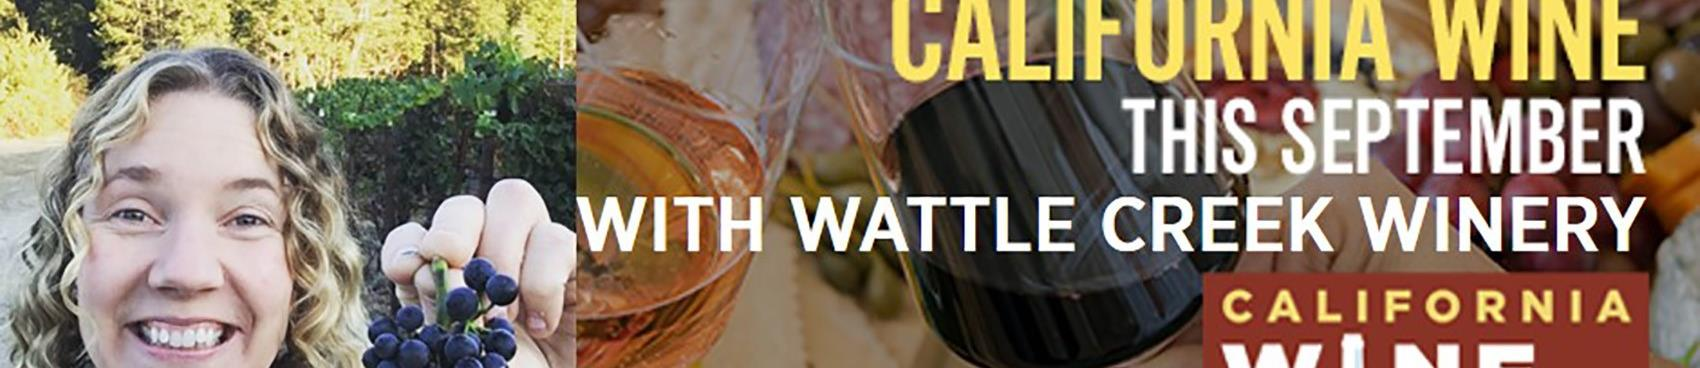 California Wine Month Virtual Tasting with Wattle Creek Winery